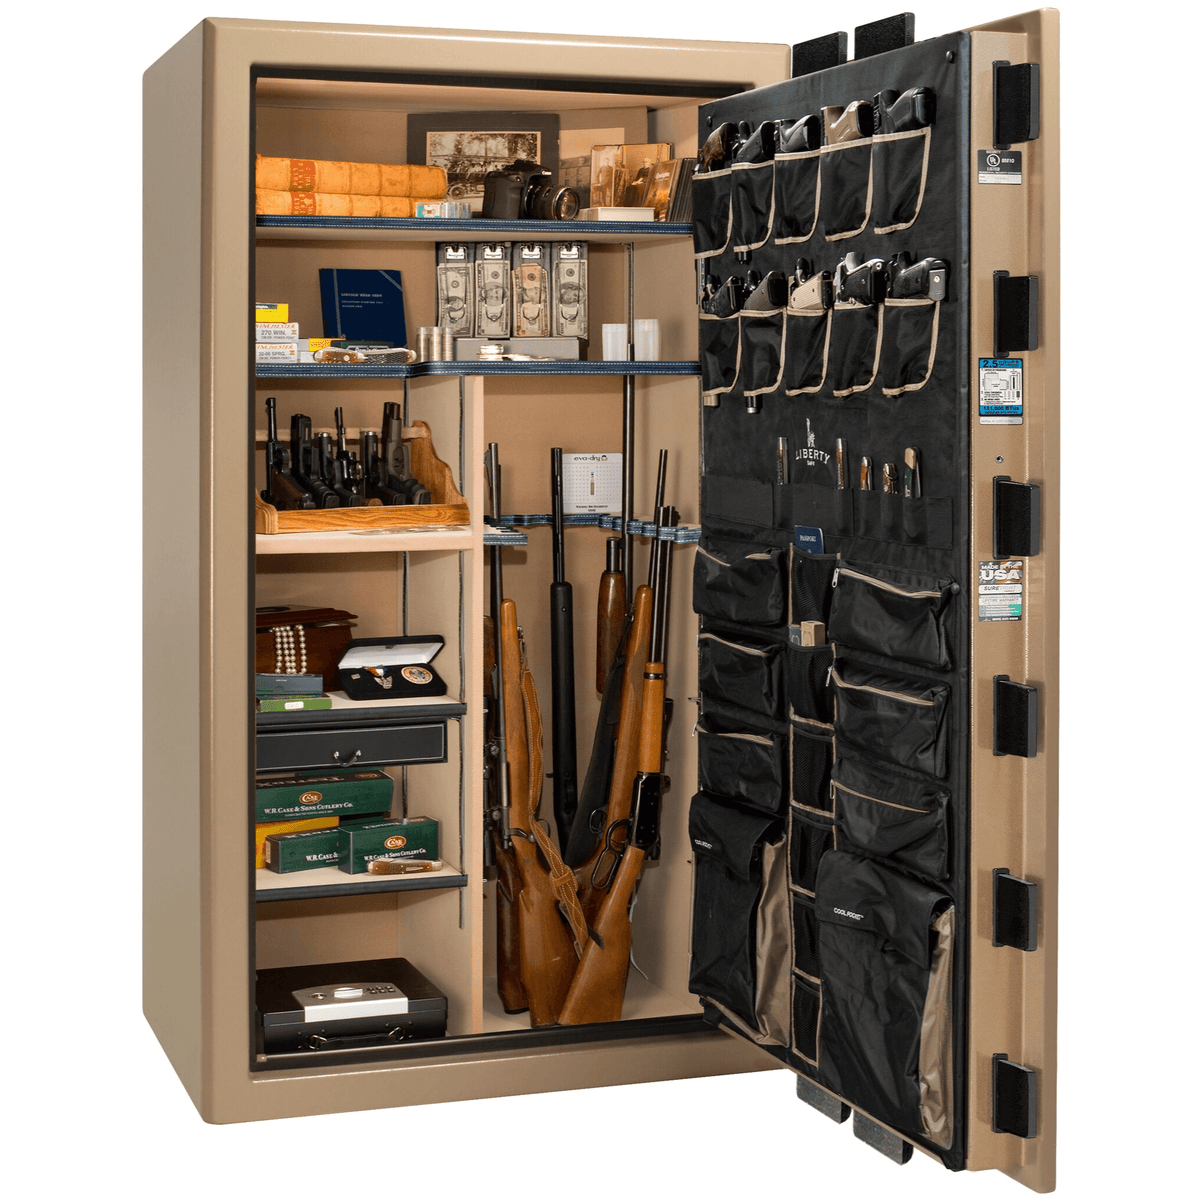 "Presidential | 50 | Level 8 Security | 150 Minute Fire Protection | Champagne | Black Electronic Lock | 72.5""(H) x 42""(W) x 32""(D)"